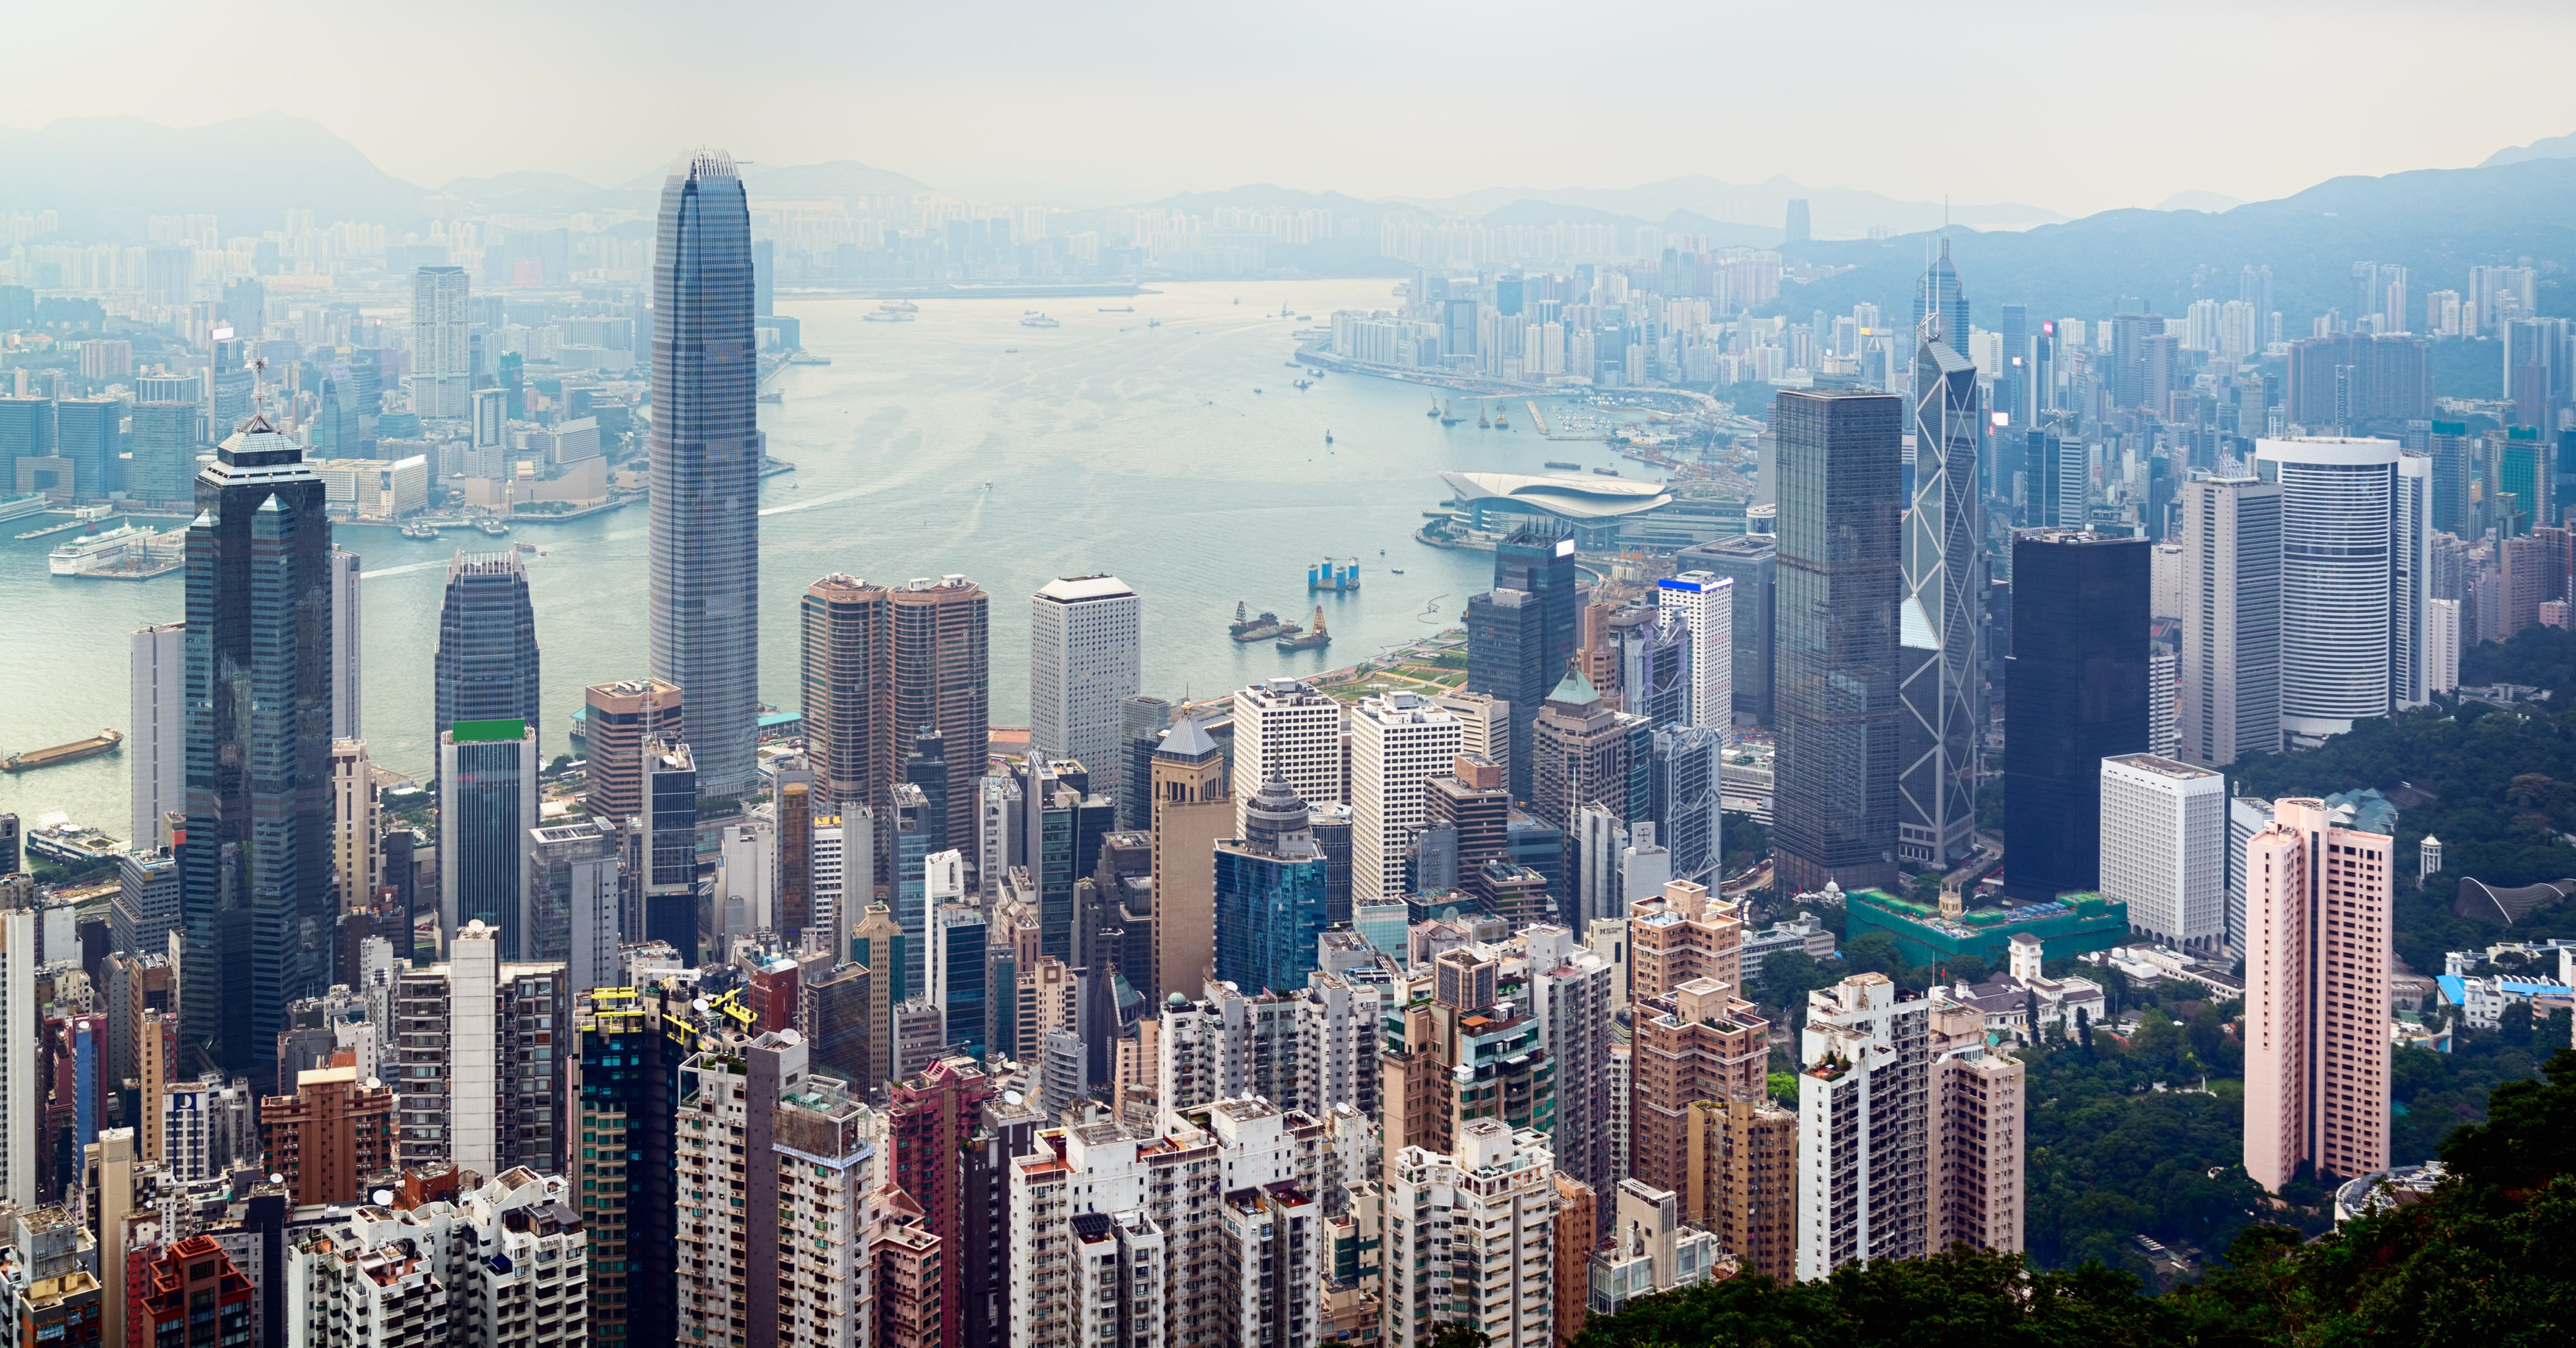 There are a number of skyscrapers and high-rise buildings in Hong Kong